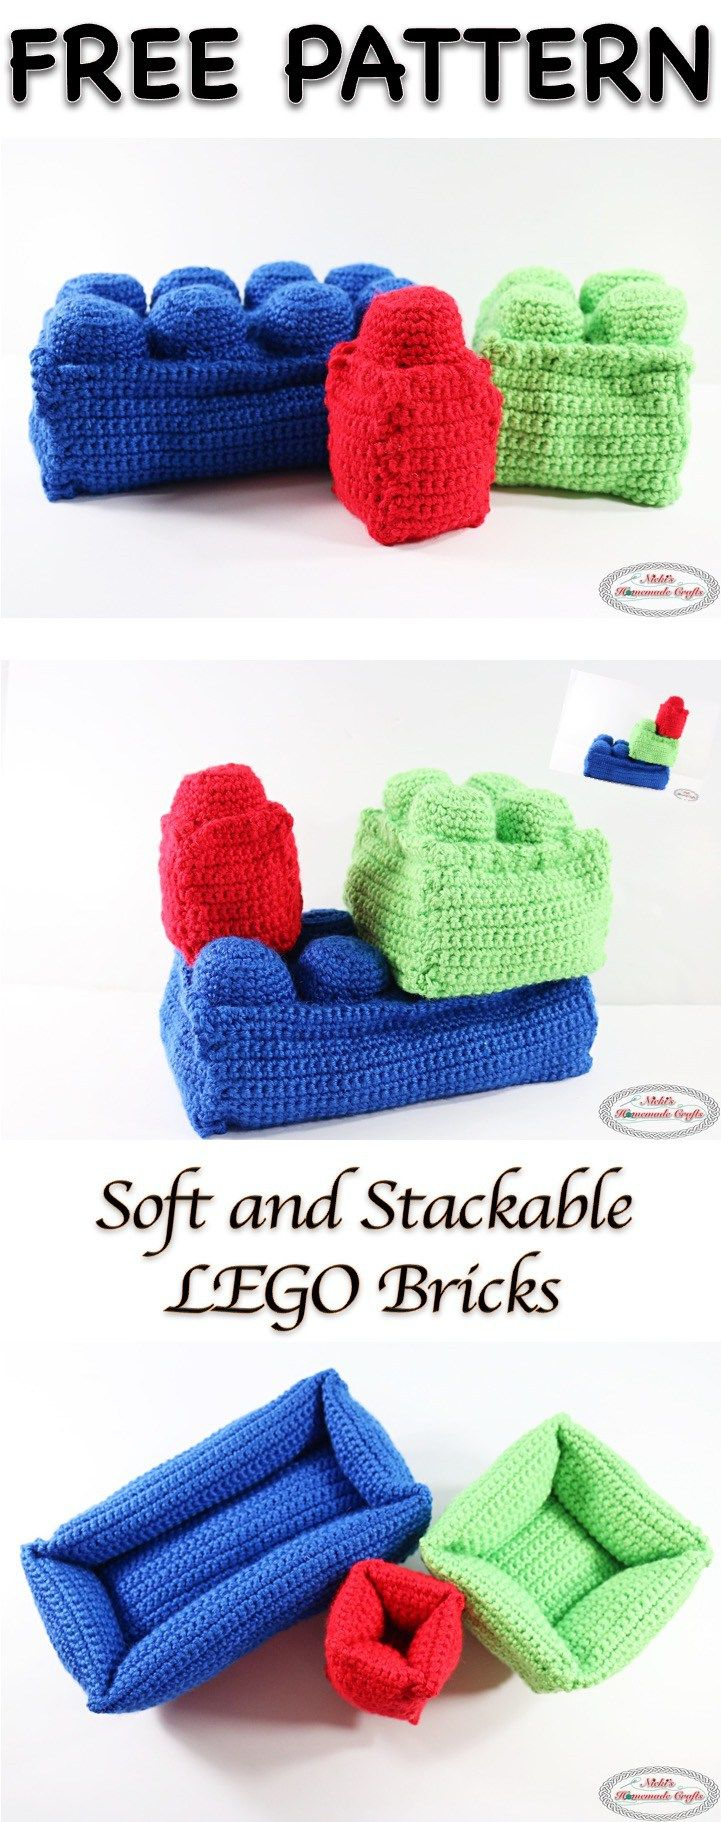 Lego bricks free crochet pattern crazy cool crochet love lego bricks free crochet pattern bankloansurffo Images